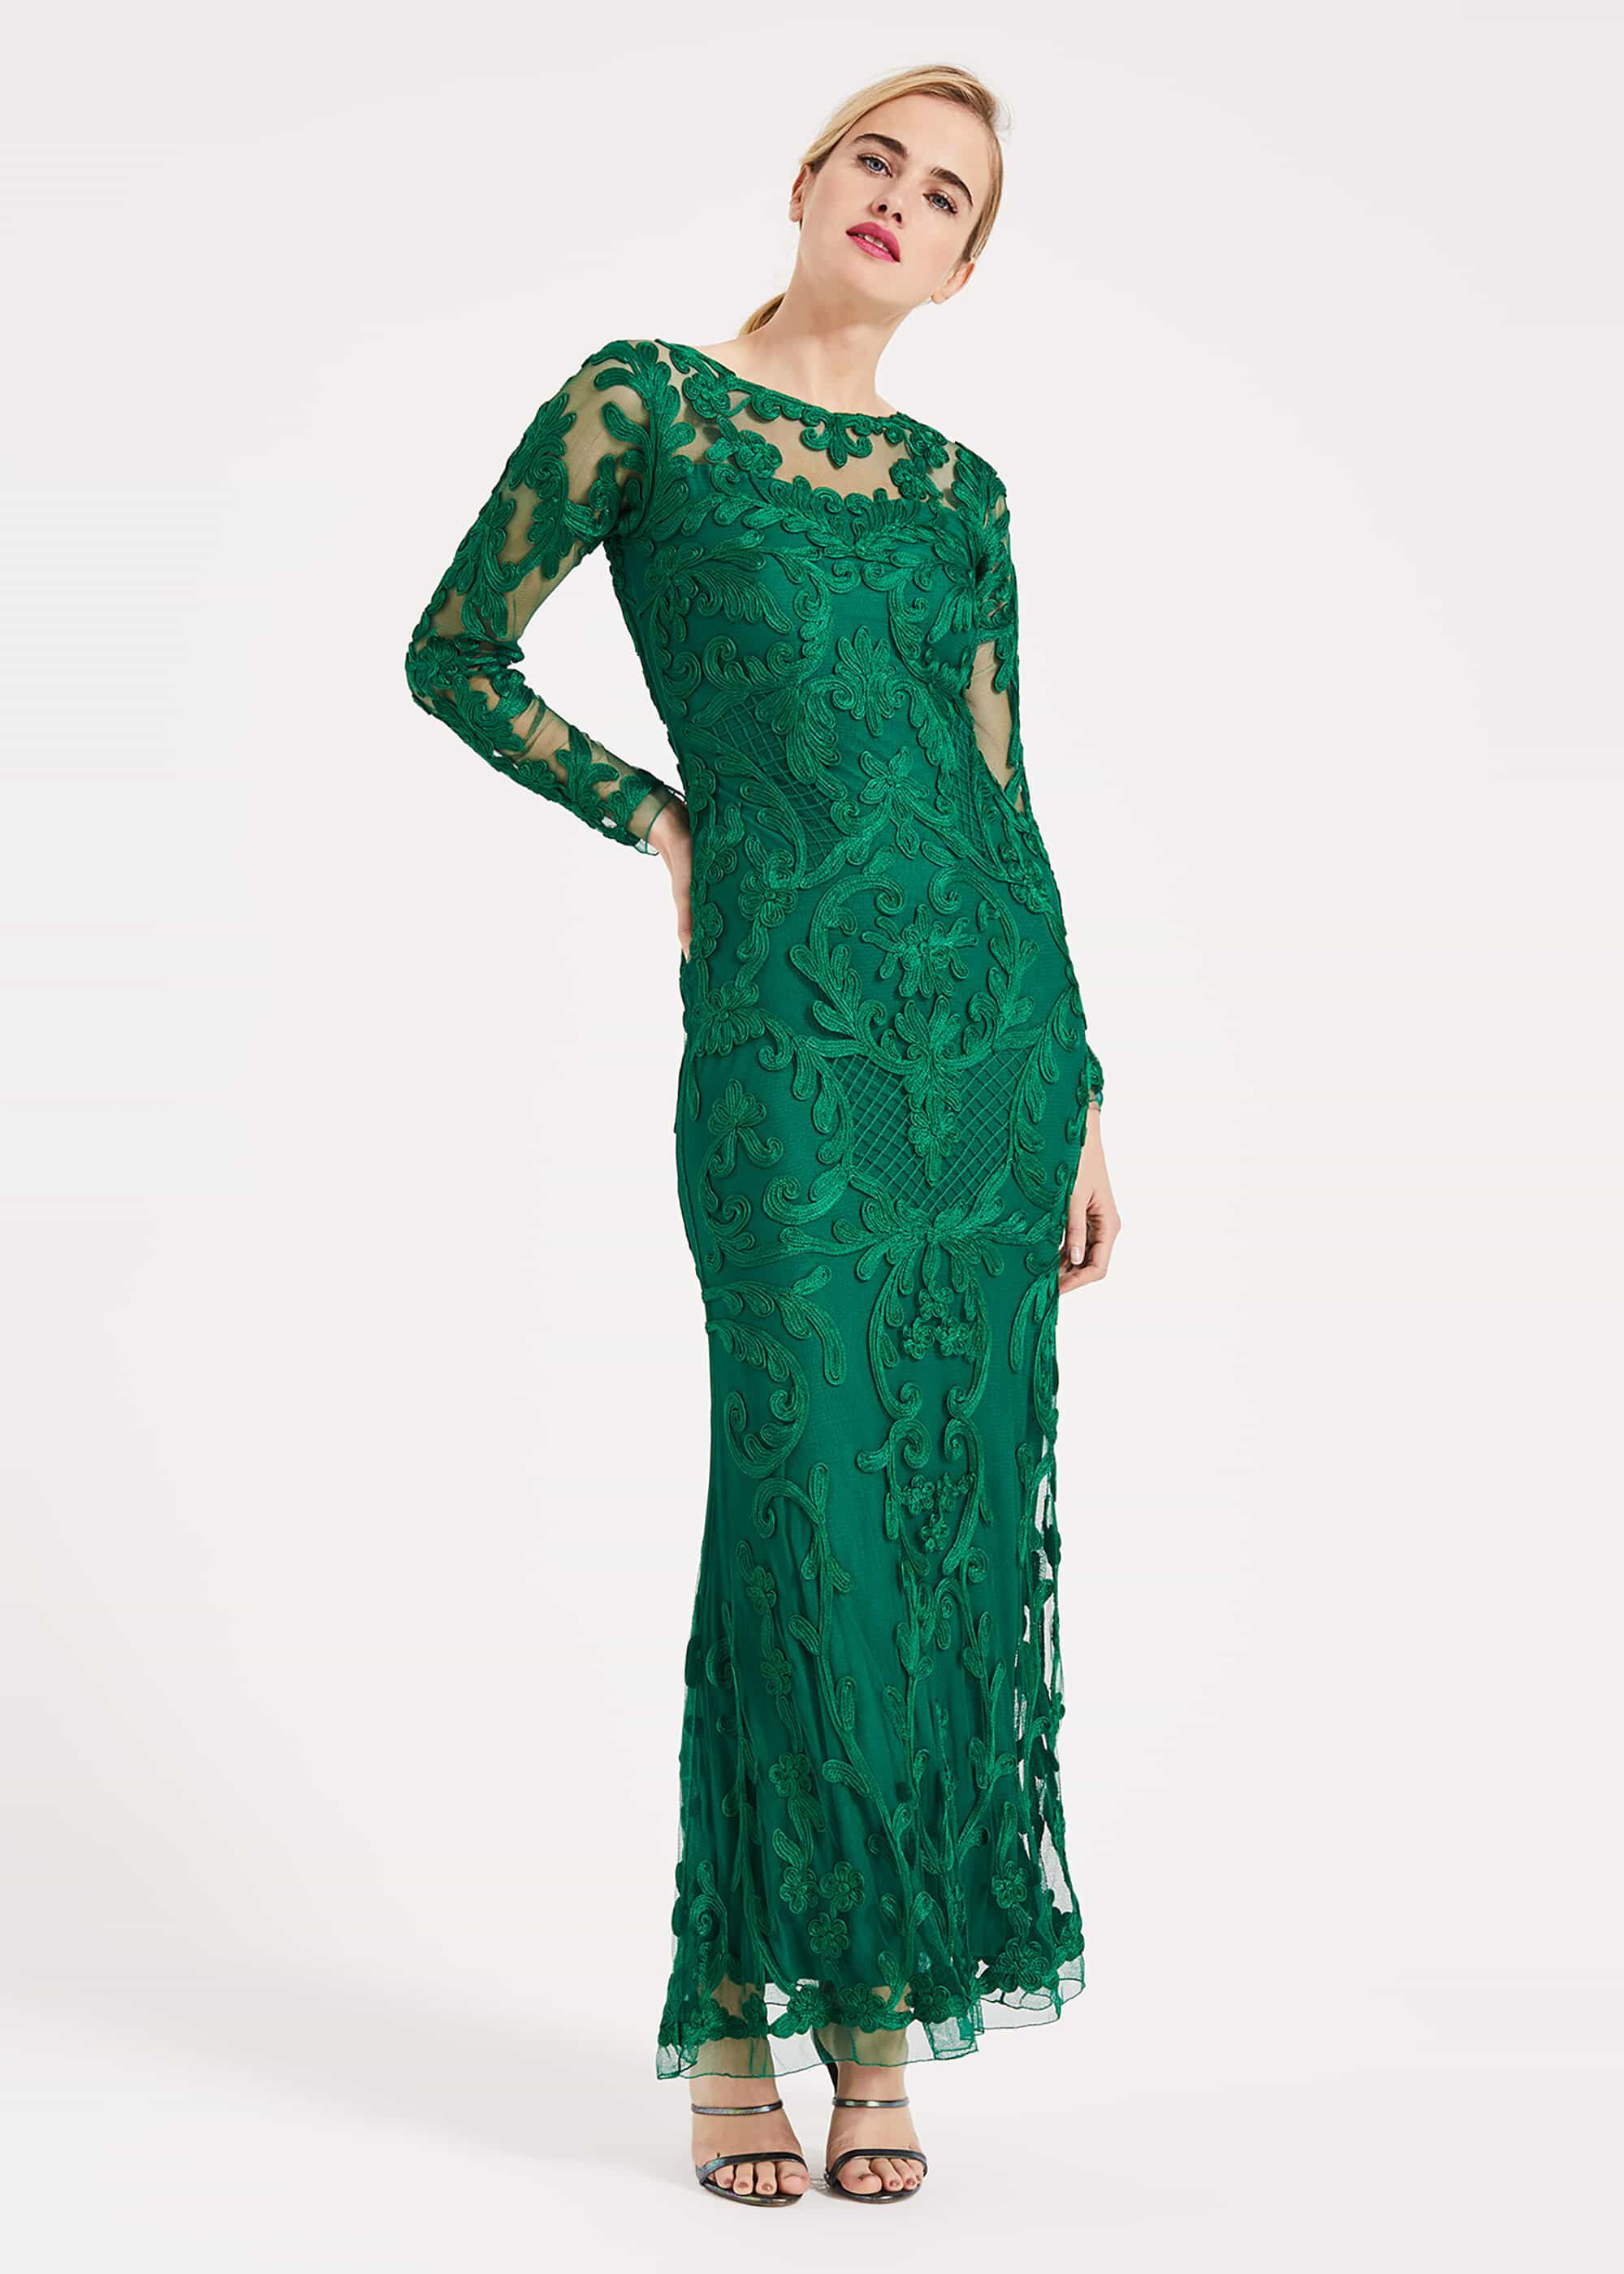 Phase Eight Nikita Tapework Lace Dress, Green, Maxi